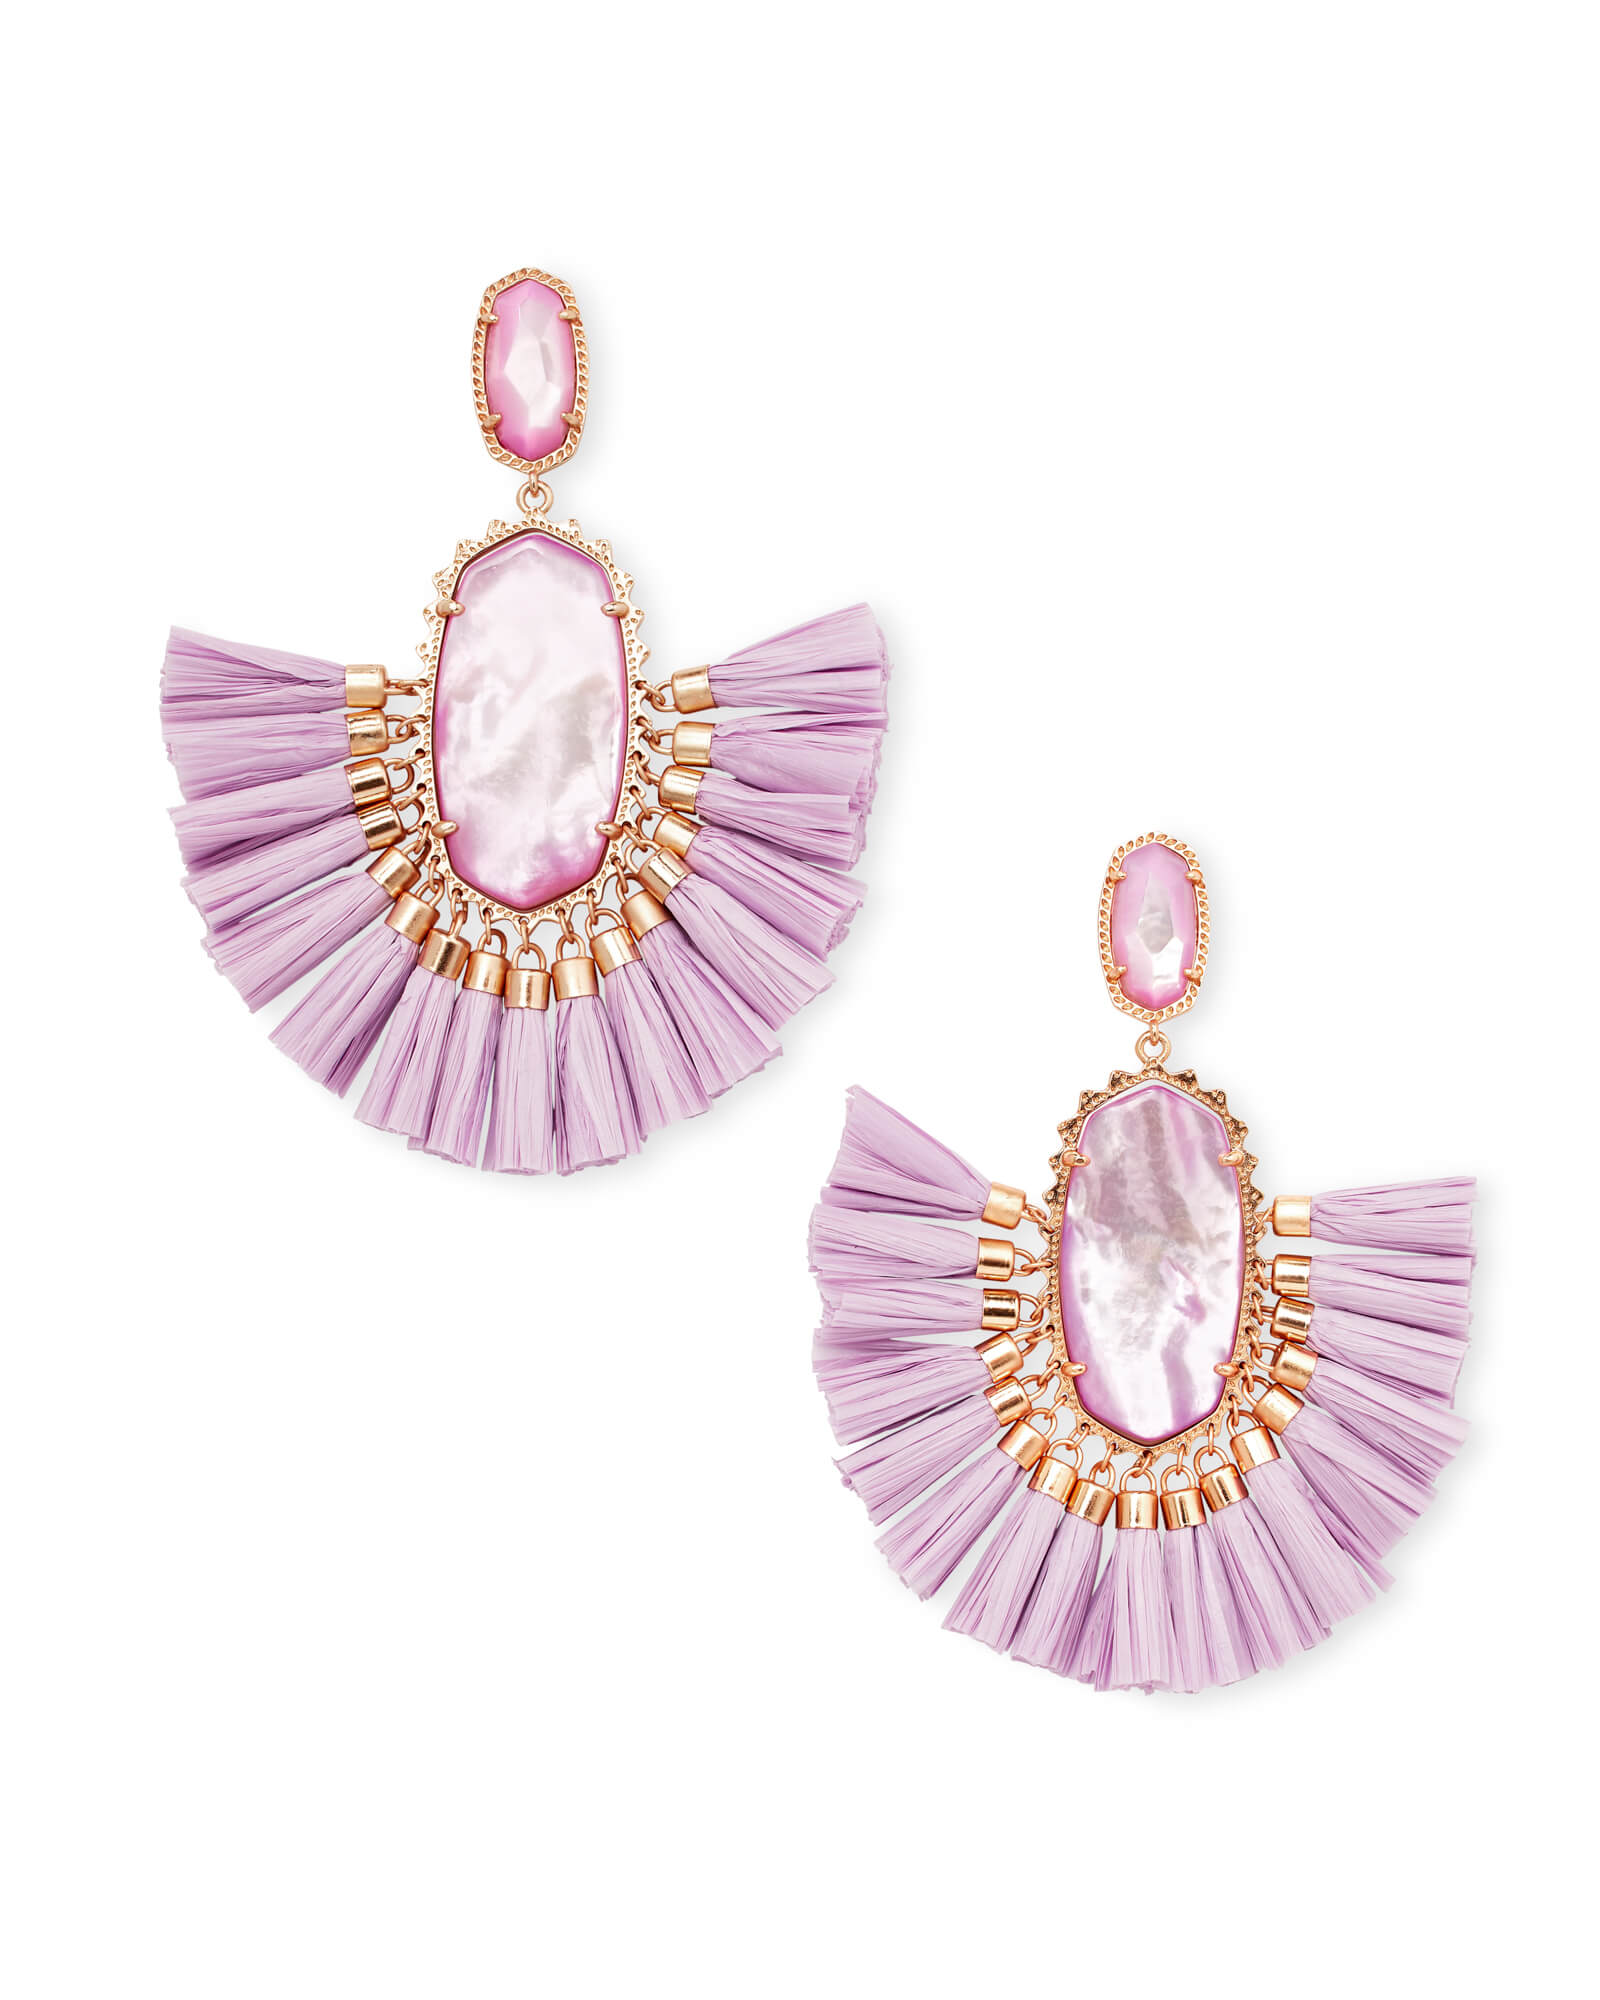 Cristina Rose Gold Statement Earrings In Lilac Mother Of Pearl